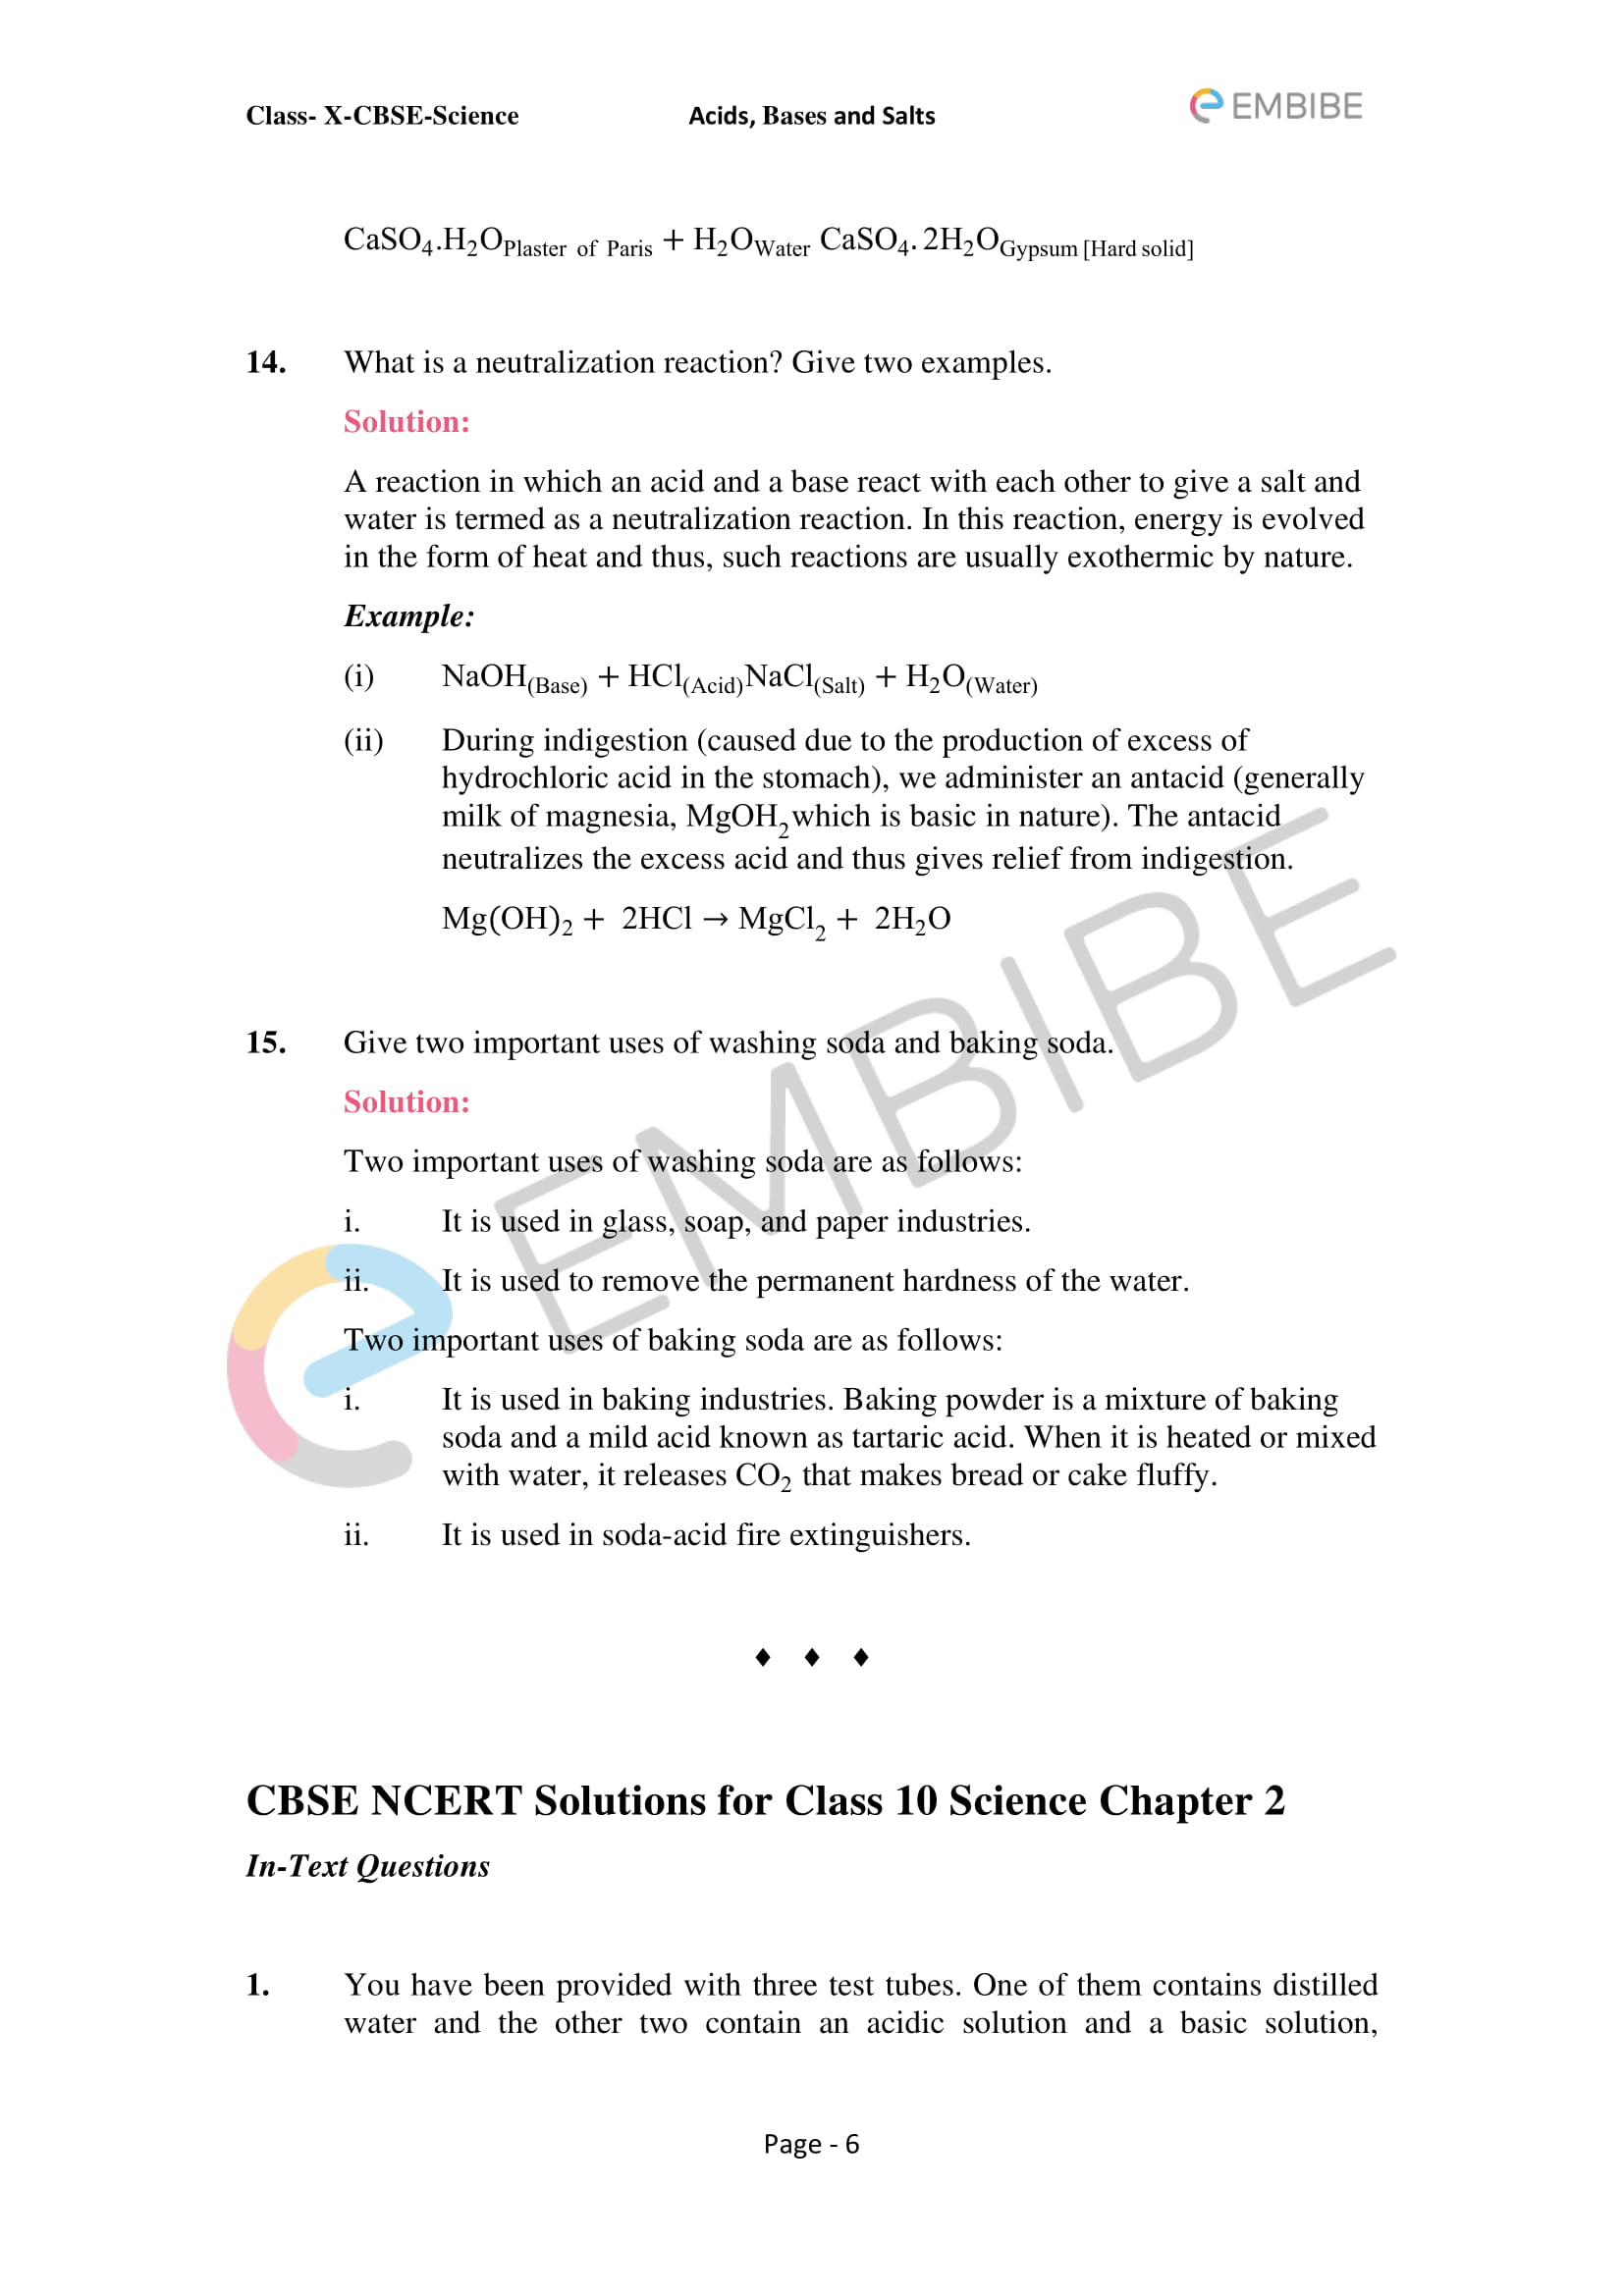 CBSE NCERT Solutions For Class 10 Science Chapter 2: Acids, Bases & Salts - 6